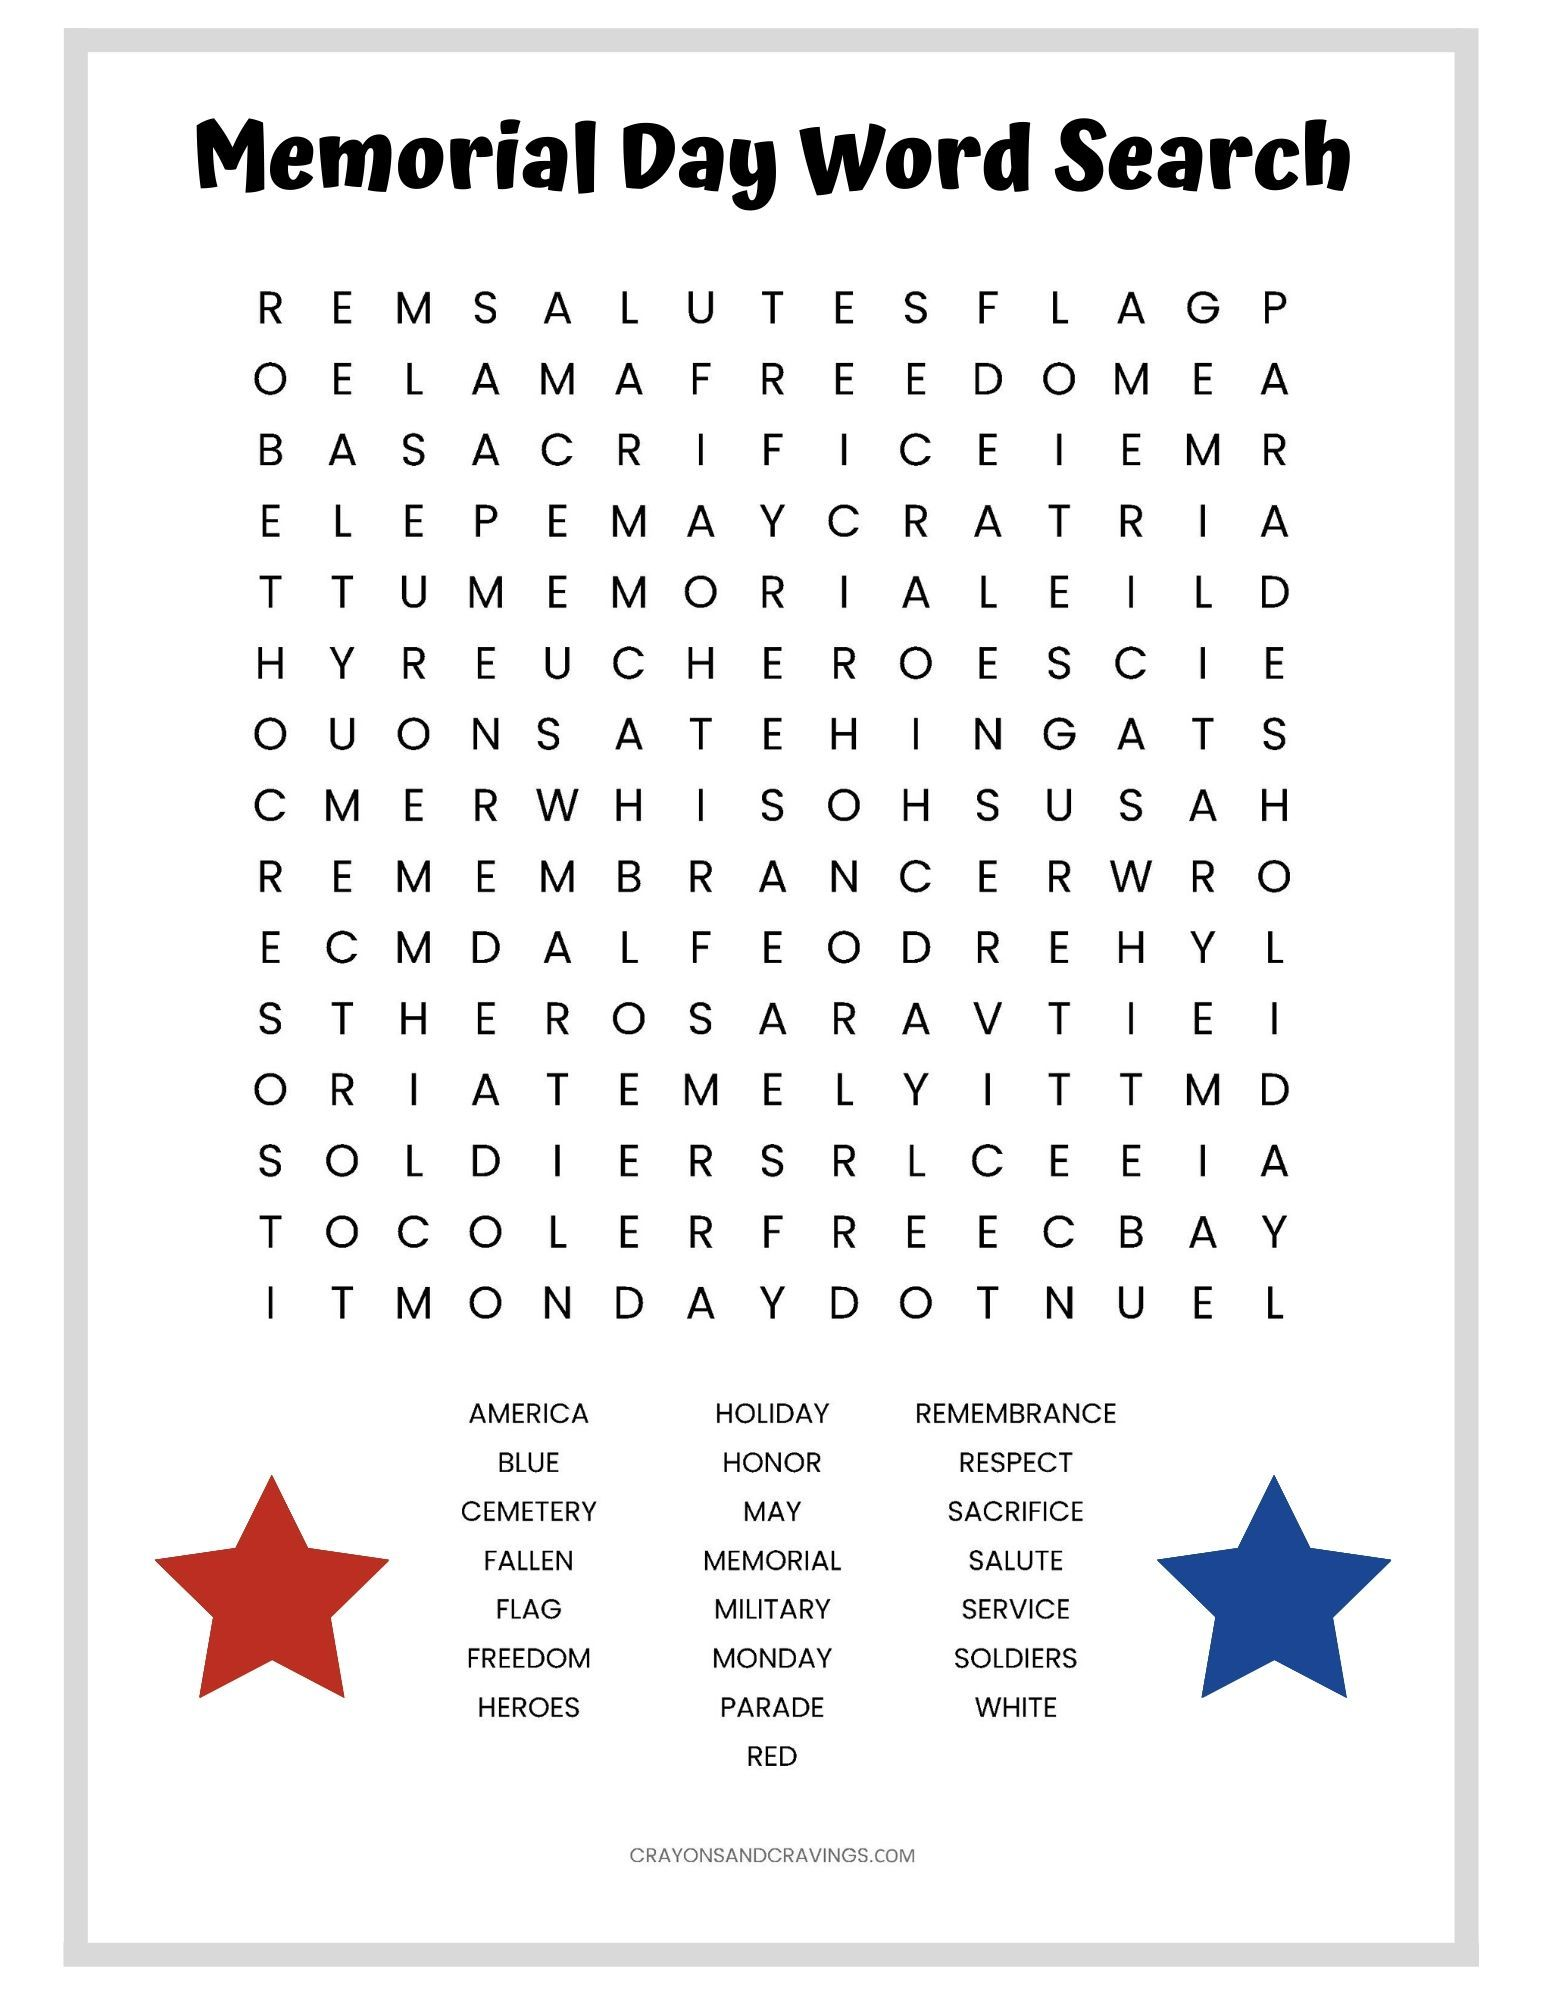 A Memorial Day Word Search Free Printable With 22 Words To